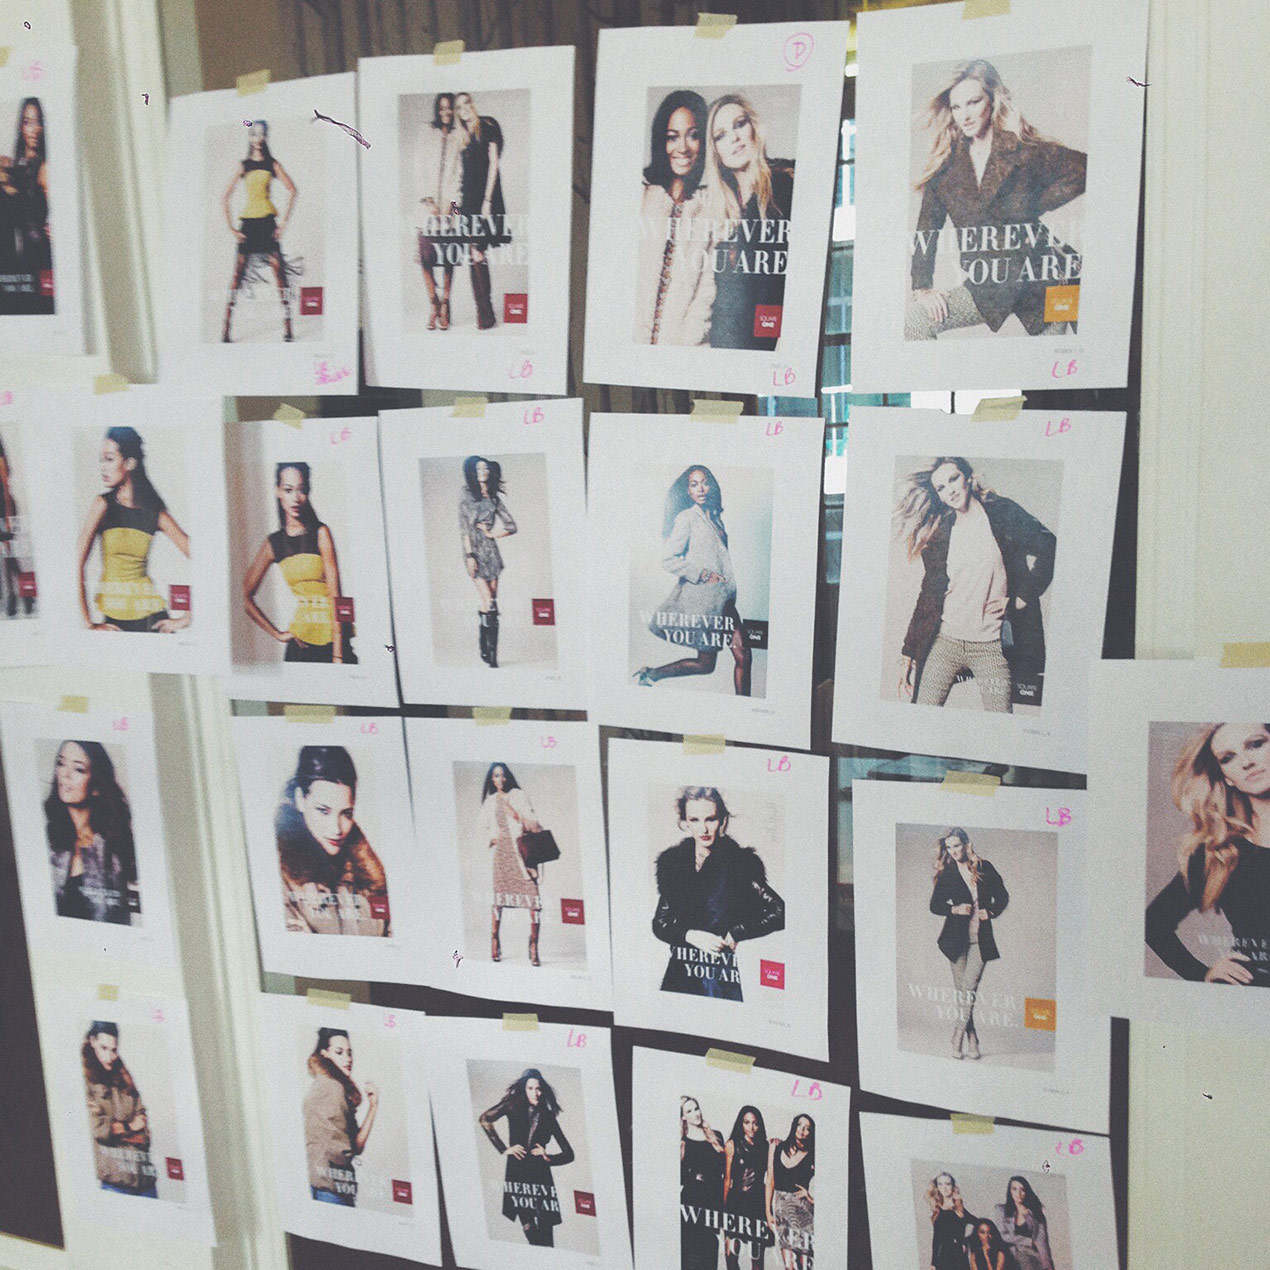 images of models hangin up on wall